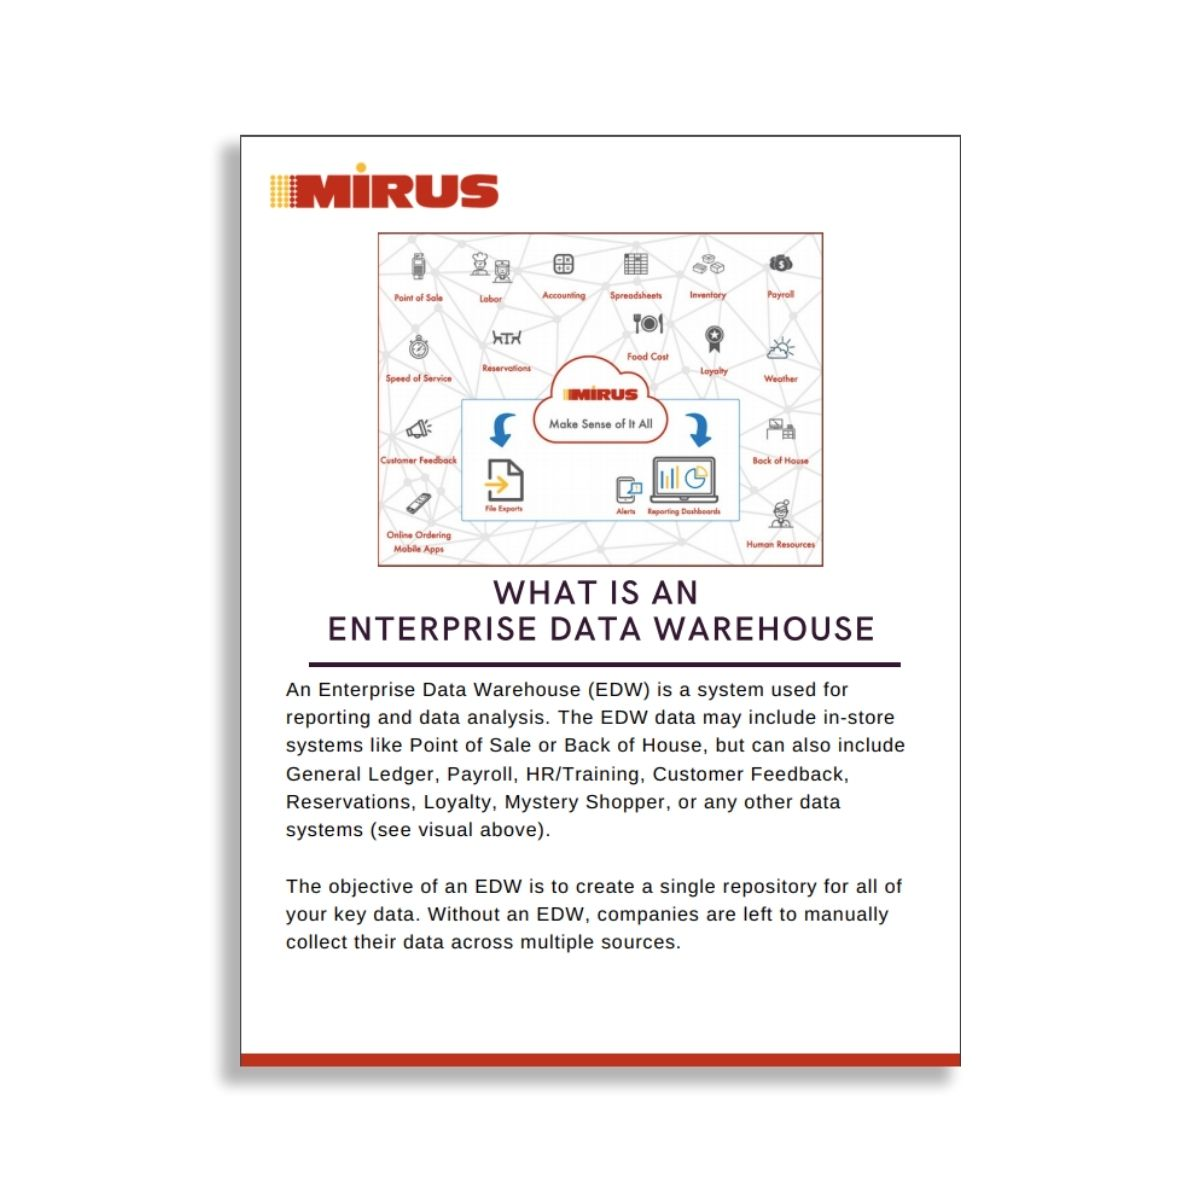 What is an Enterprise Data Warehouse Graphic